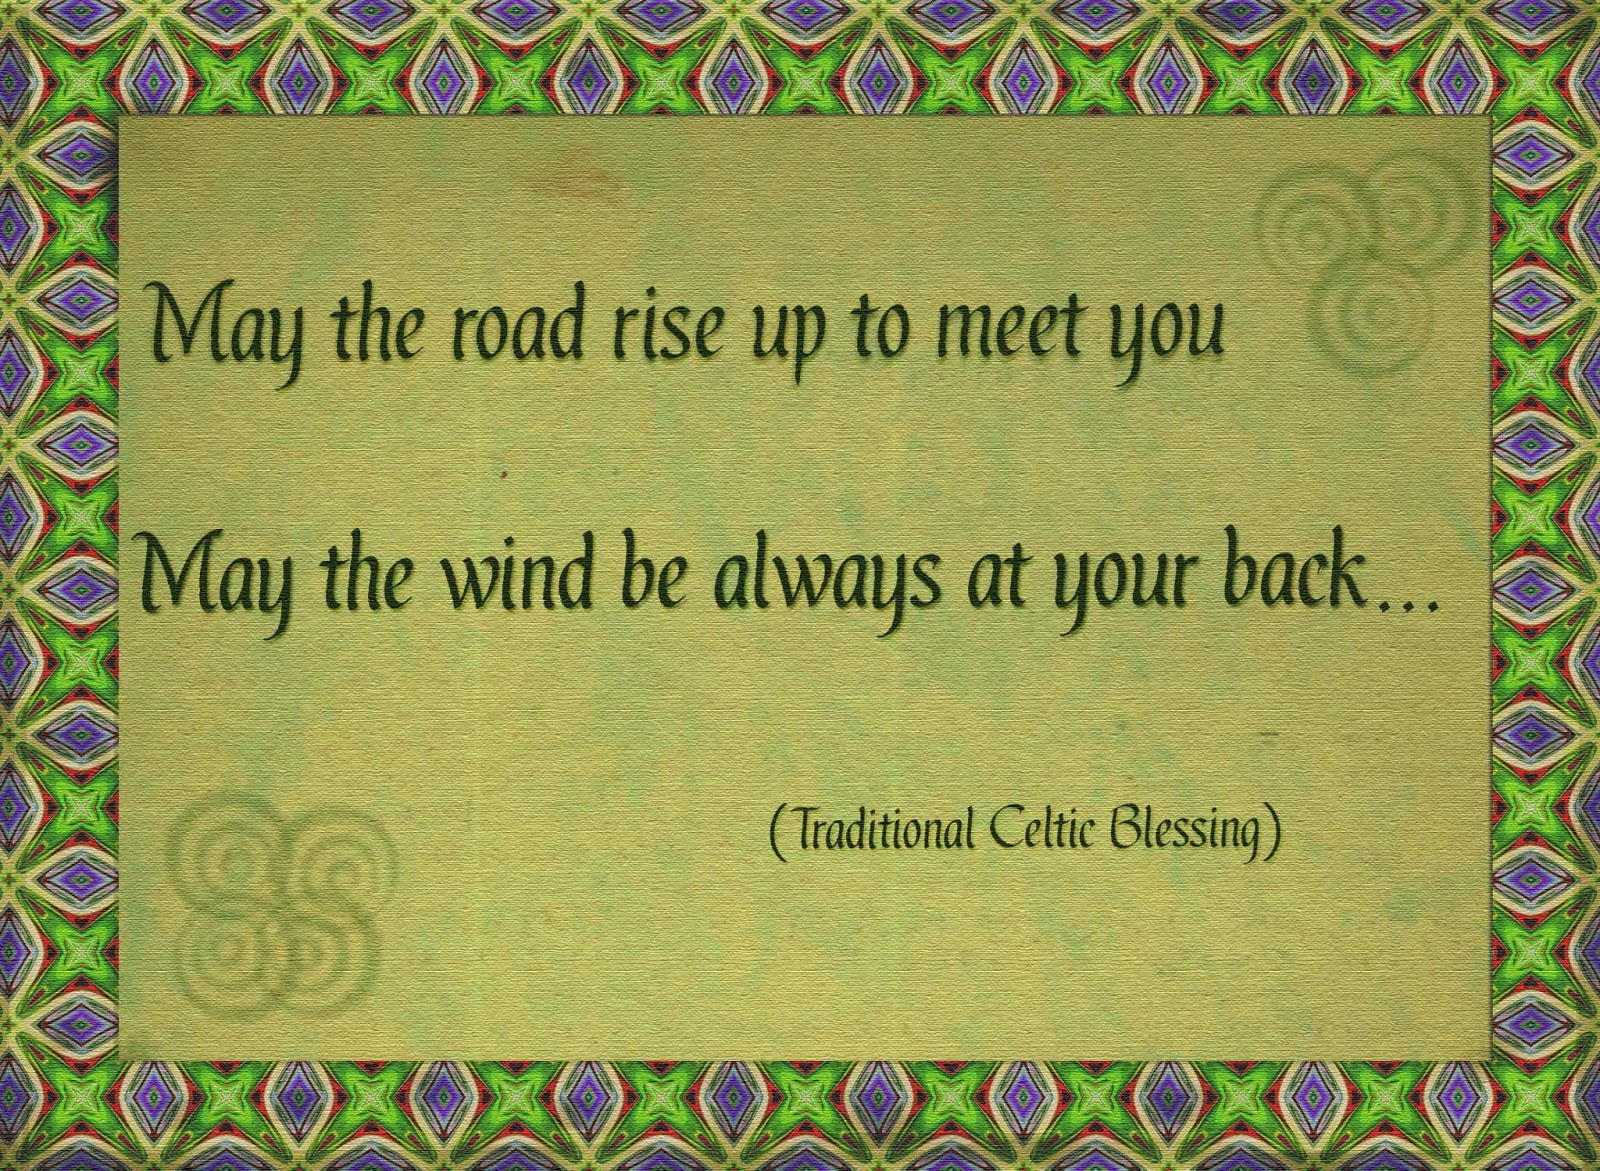 May the road rise to meet you, may the wind be always at your back. A traditional celtic blessing, with 3 and 4 leafed clovers, and a St Patrick's day pattern in the background.